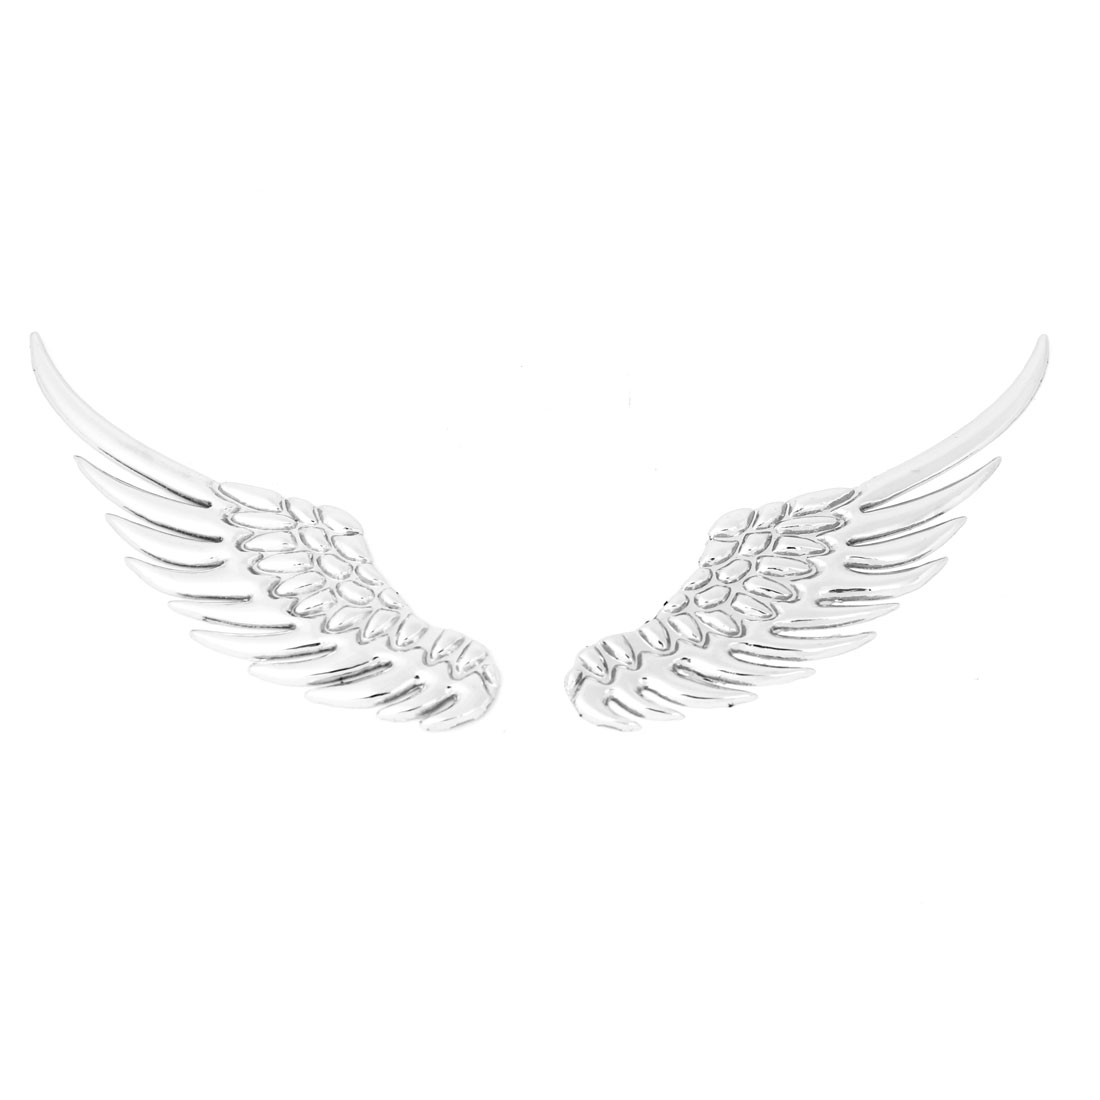 2 x Silver Tone Metal 3D Wings Design Sticker Badge Emblem for Car